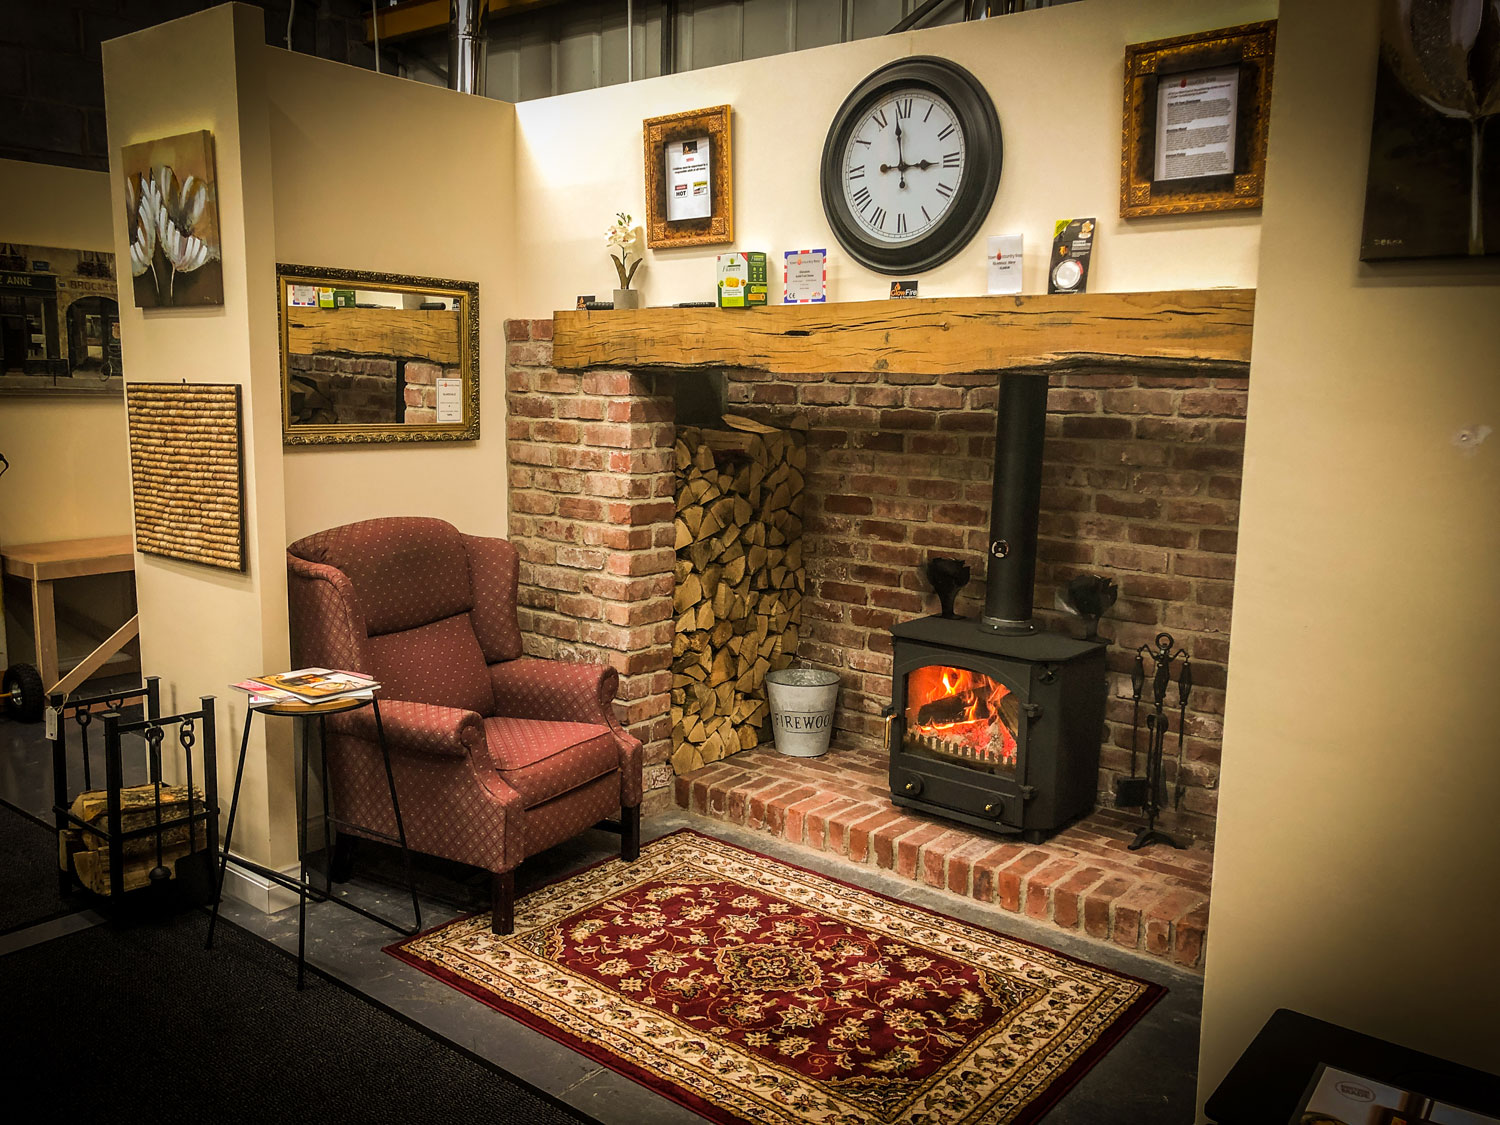 Welcome To GlowFire Stoves and Fireplaces in Carmarthen, West Wales. Retailing Clock, Town and Country, multi fuel stoves and installation.